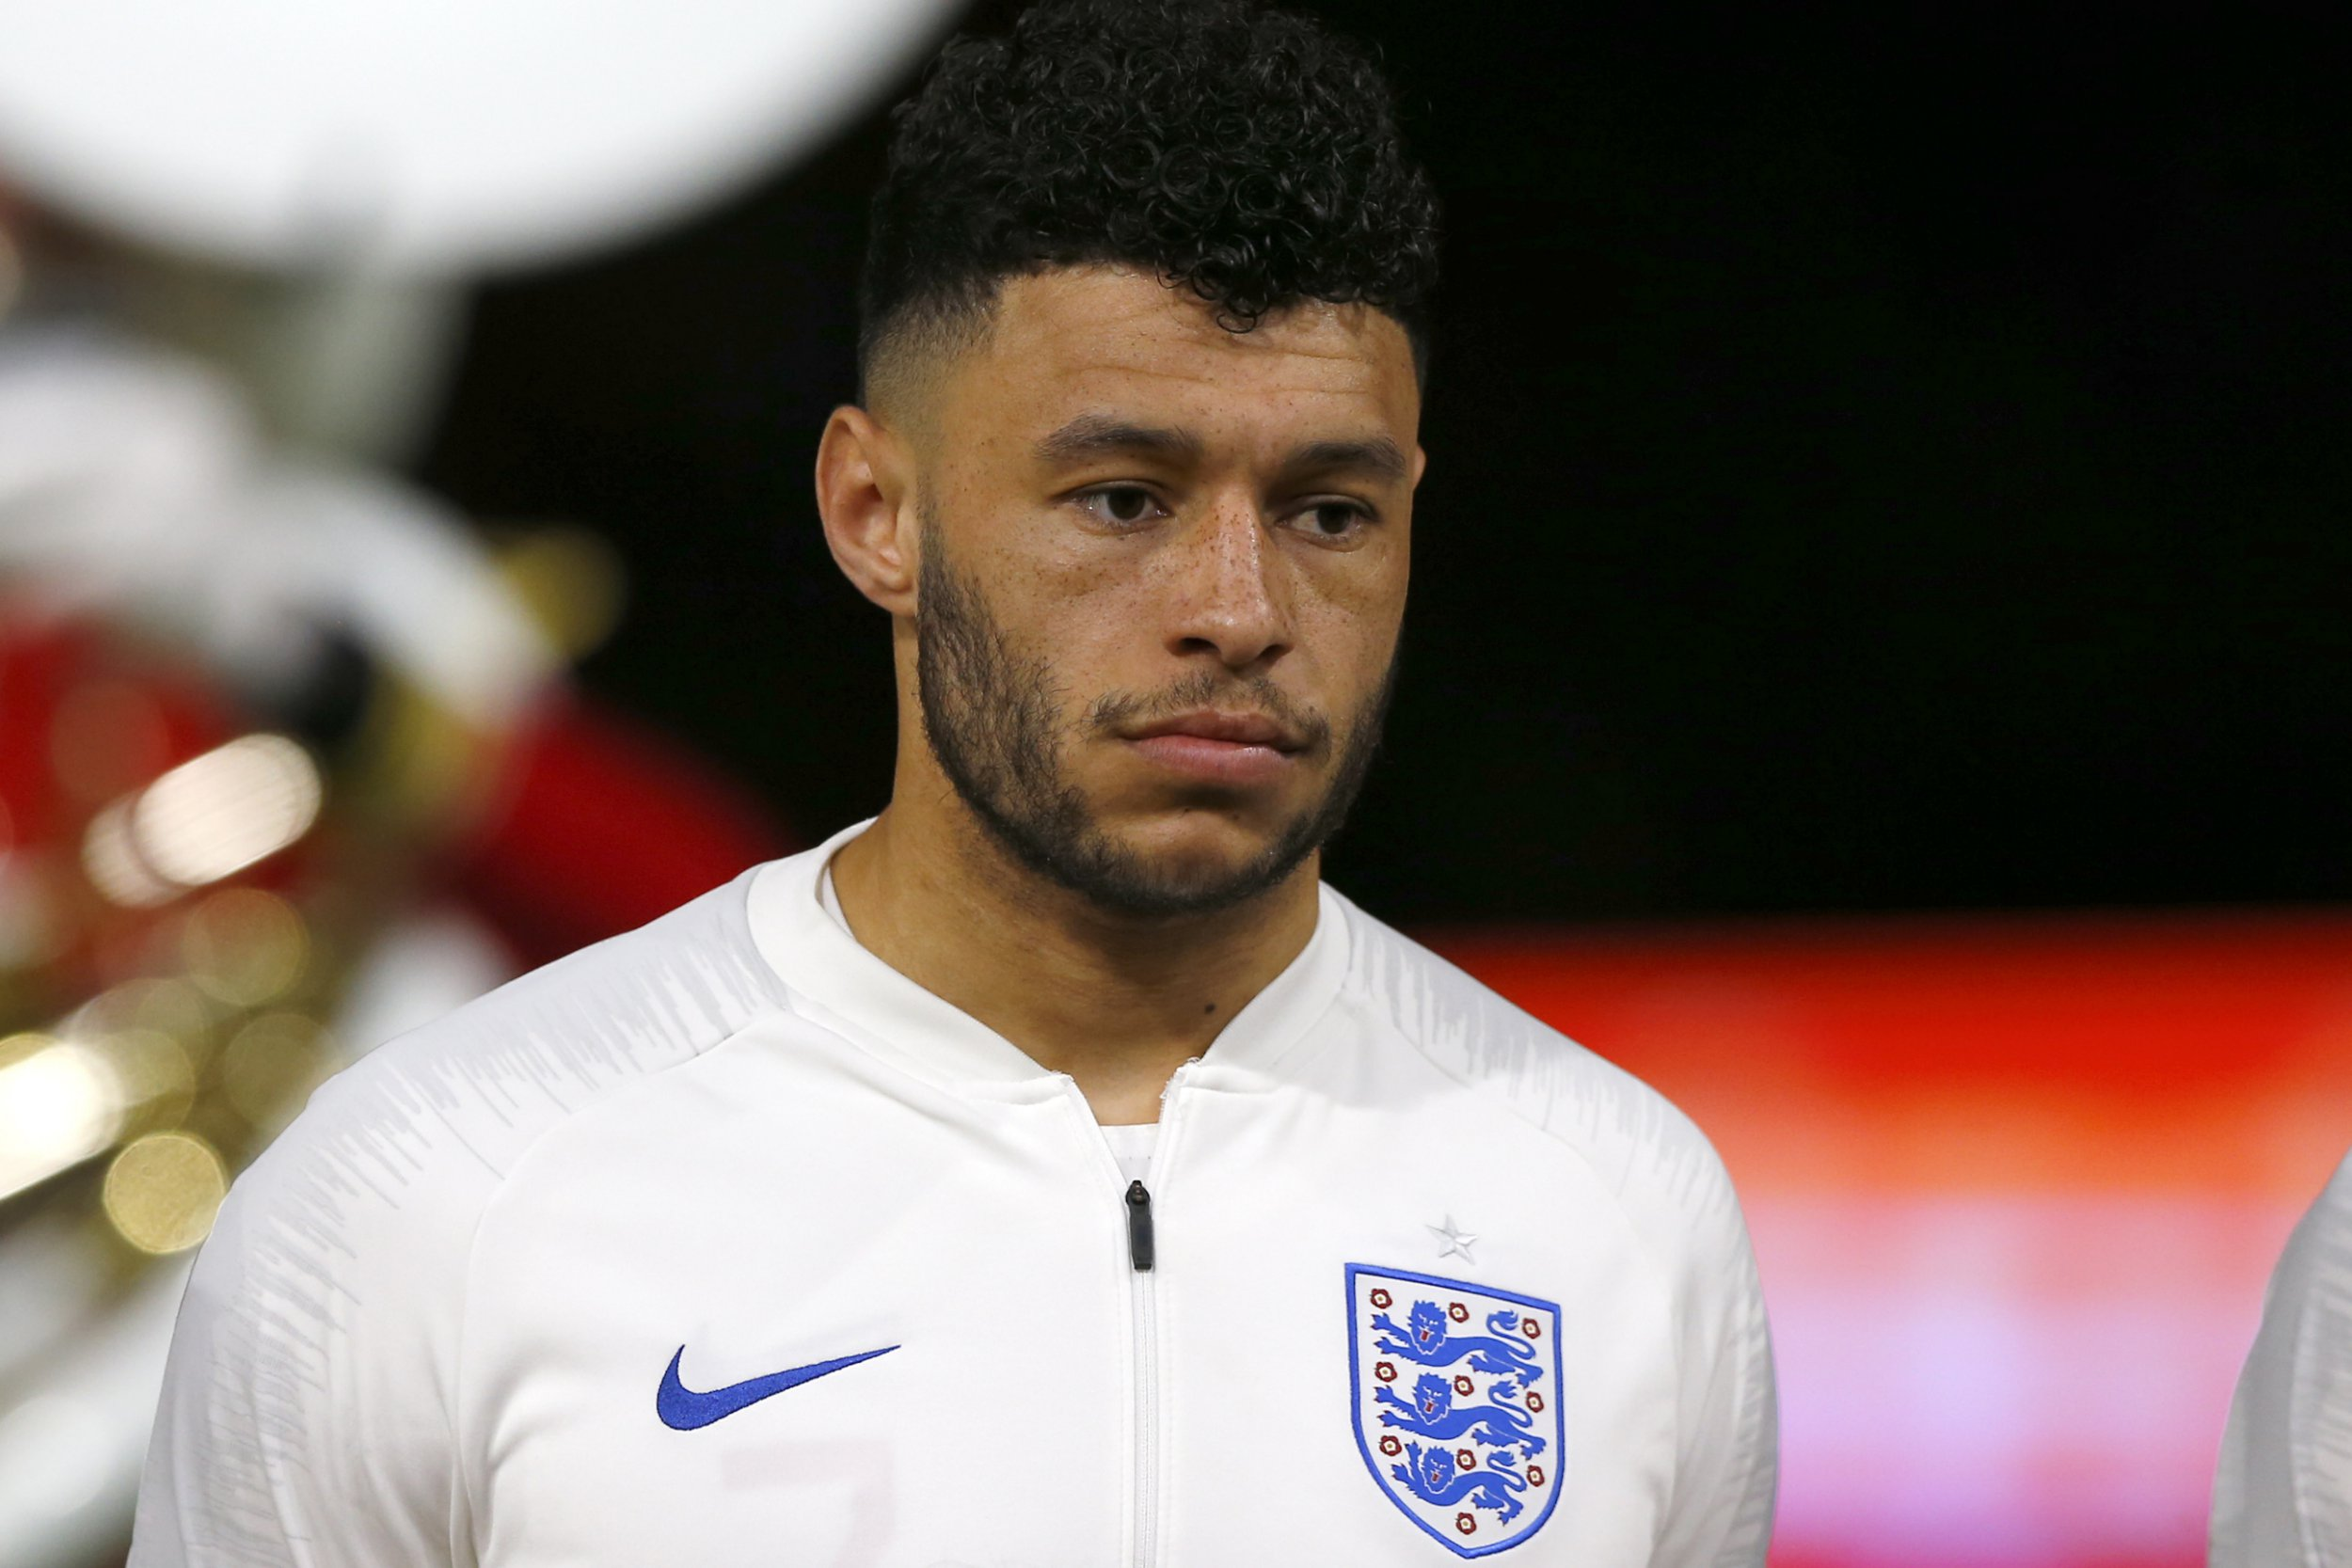 England's Alex Oxlade-Chamberlain lines up prior to the international friendly soccer match between the Netherlands and England at the Amsterdam ArenA in Amsterdam, Netherlands, Friday, March 23, 2018. (AP Photo/Peter Dejong)